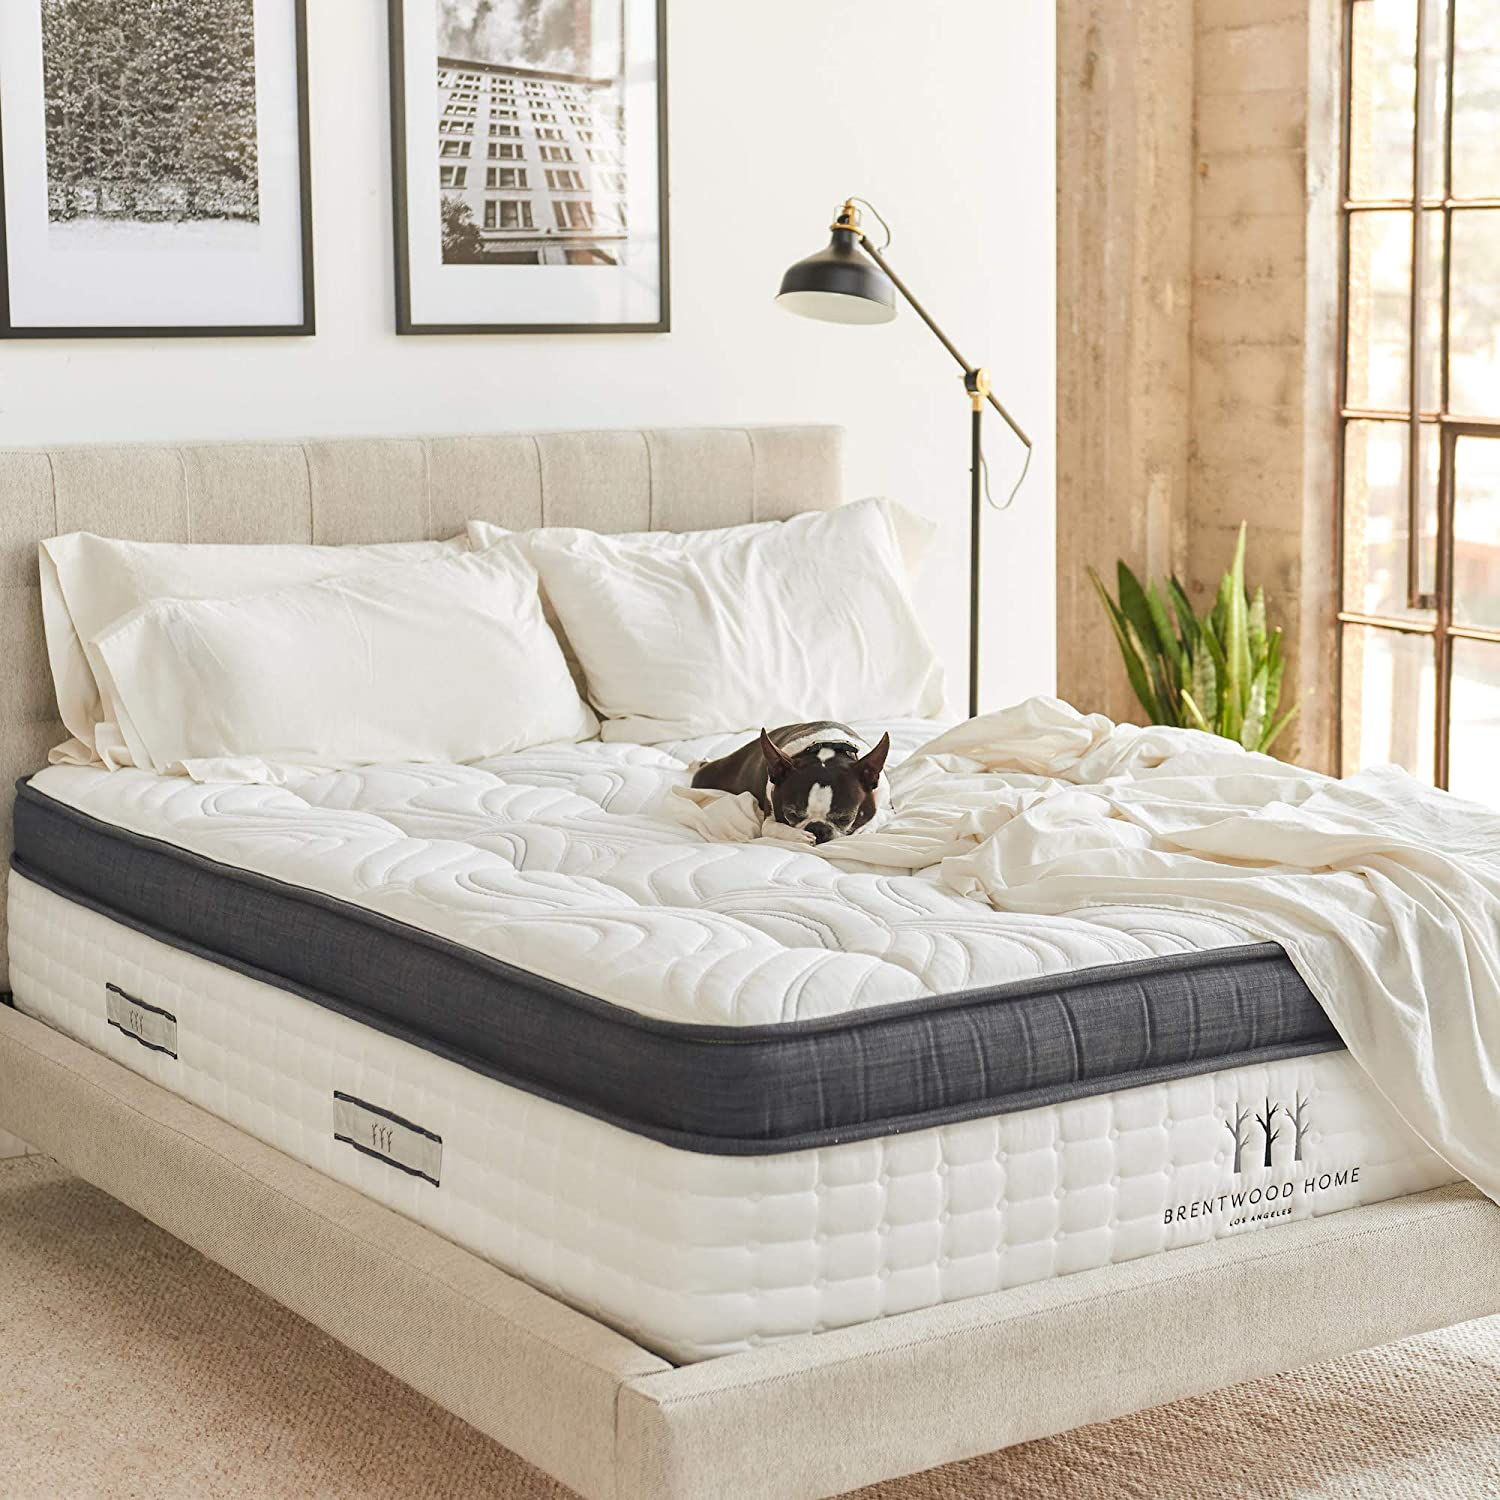 Brentwood Home Oceano Wrapped Innerspring Mattress, Made in California, Queen